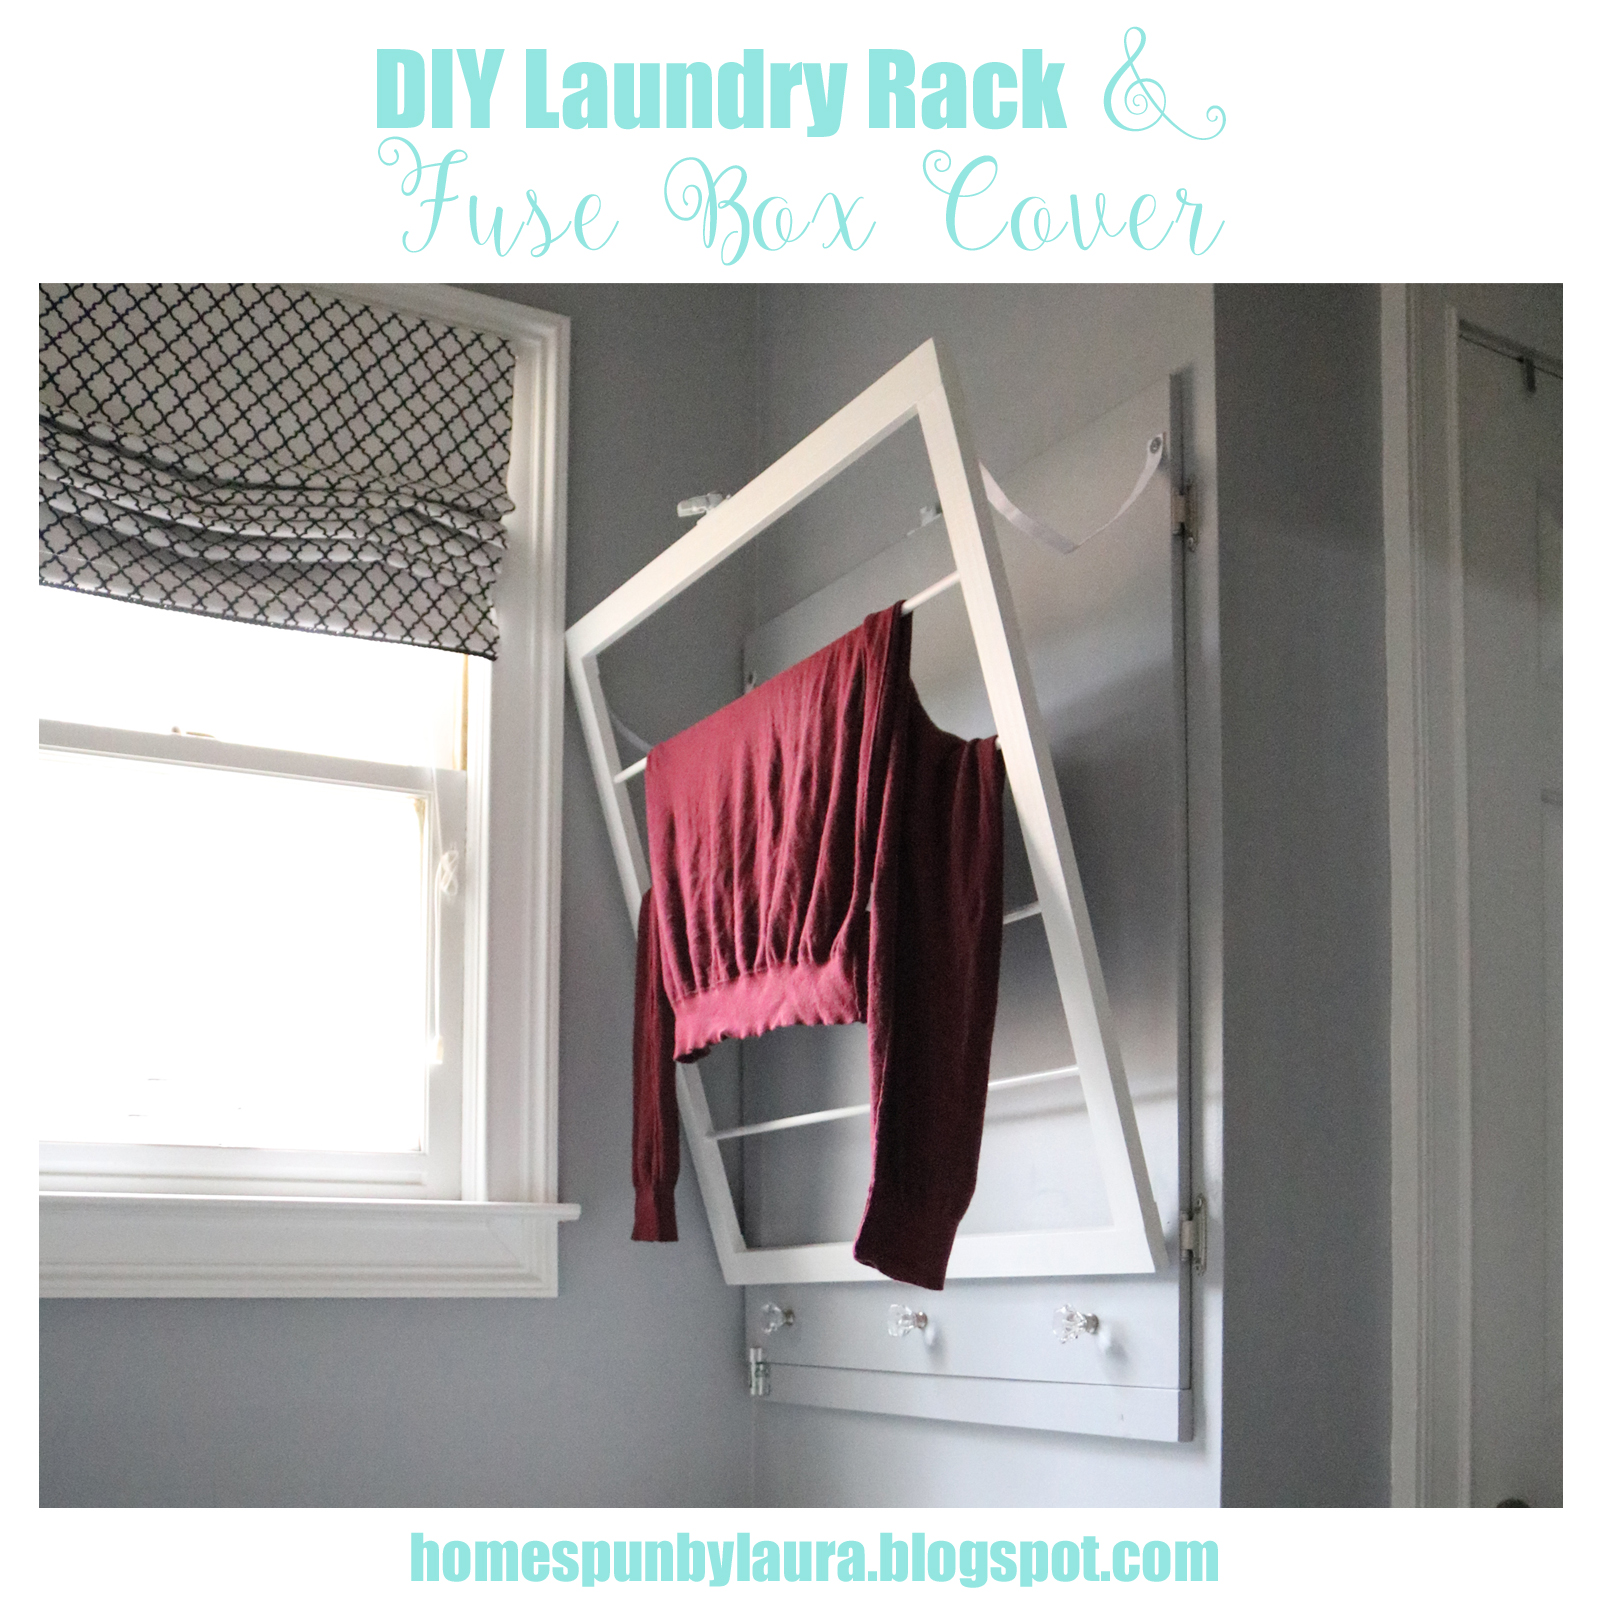 Diy Laundry Rack Fuse Box Cover Homespun By Laura Dryer Drying And